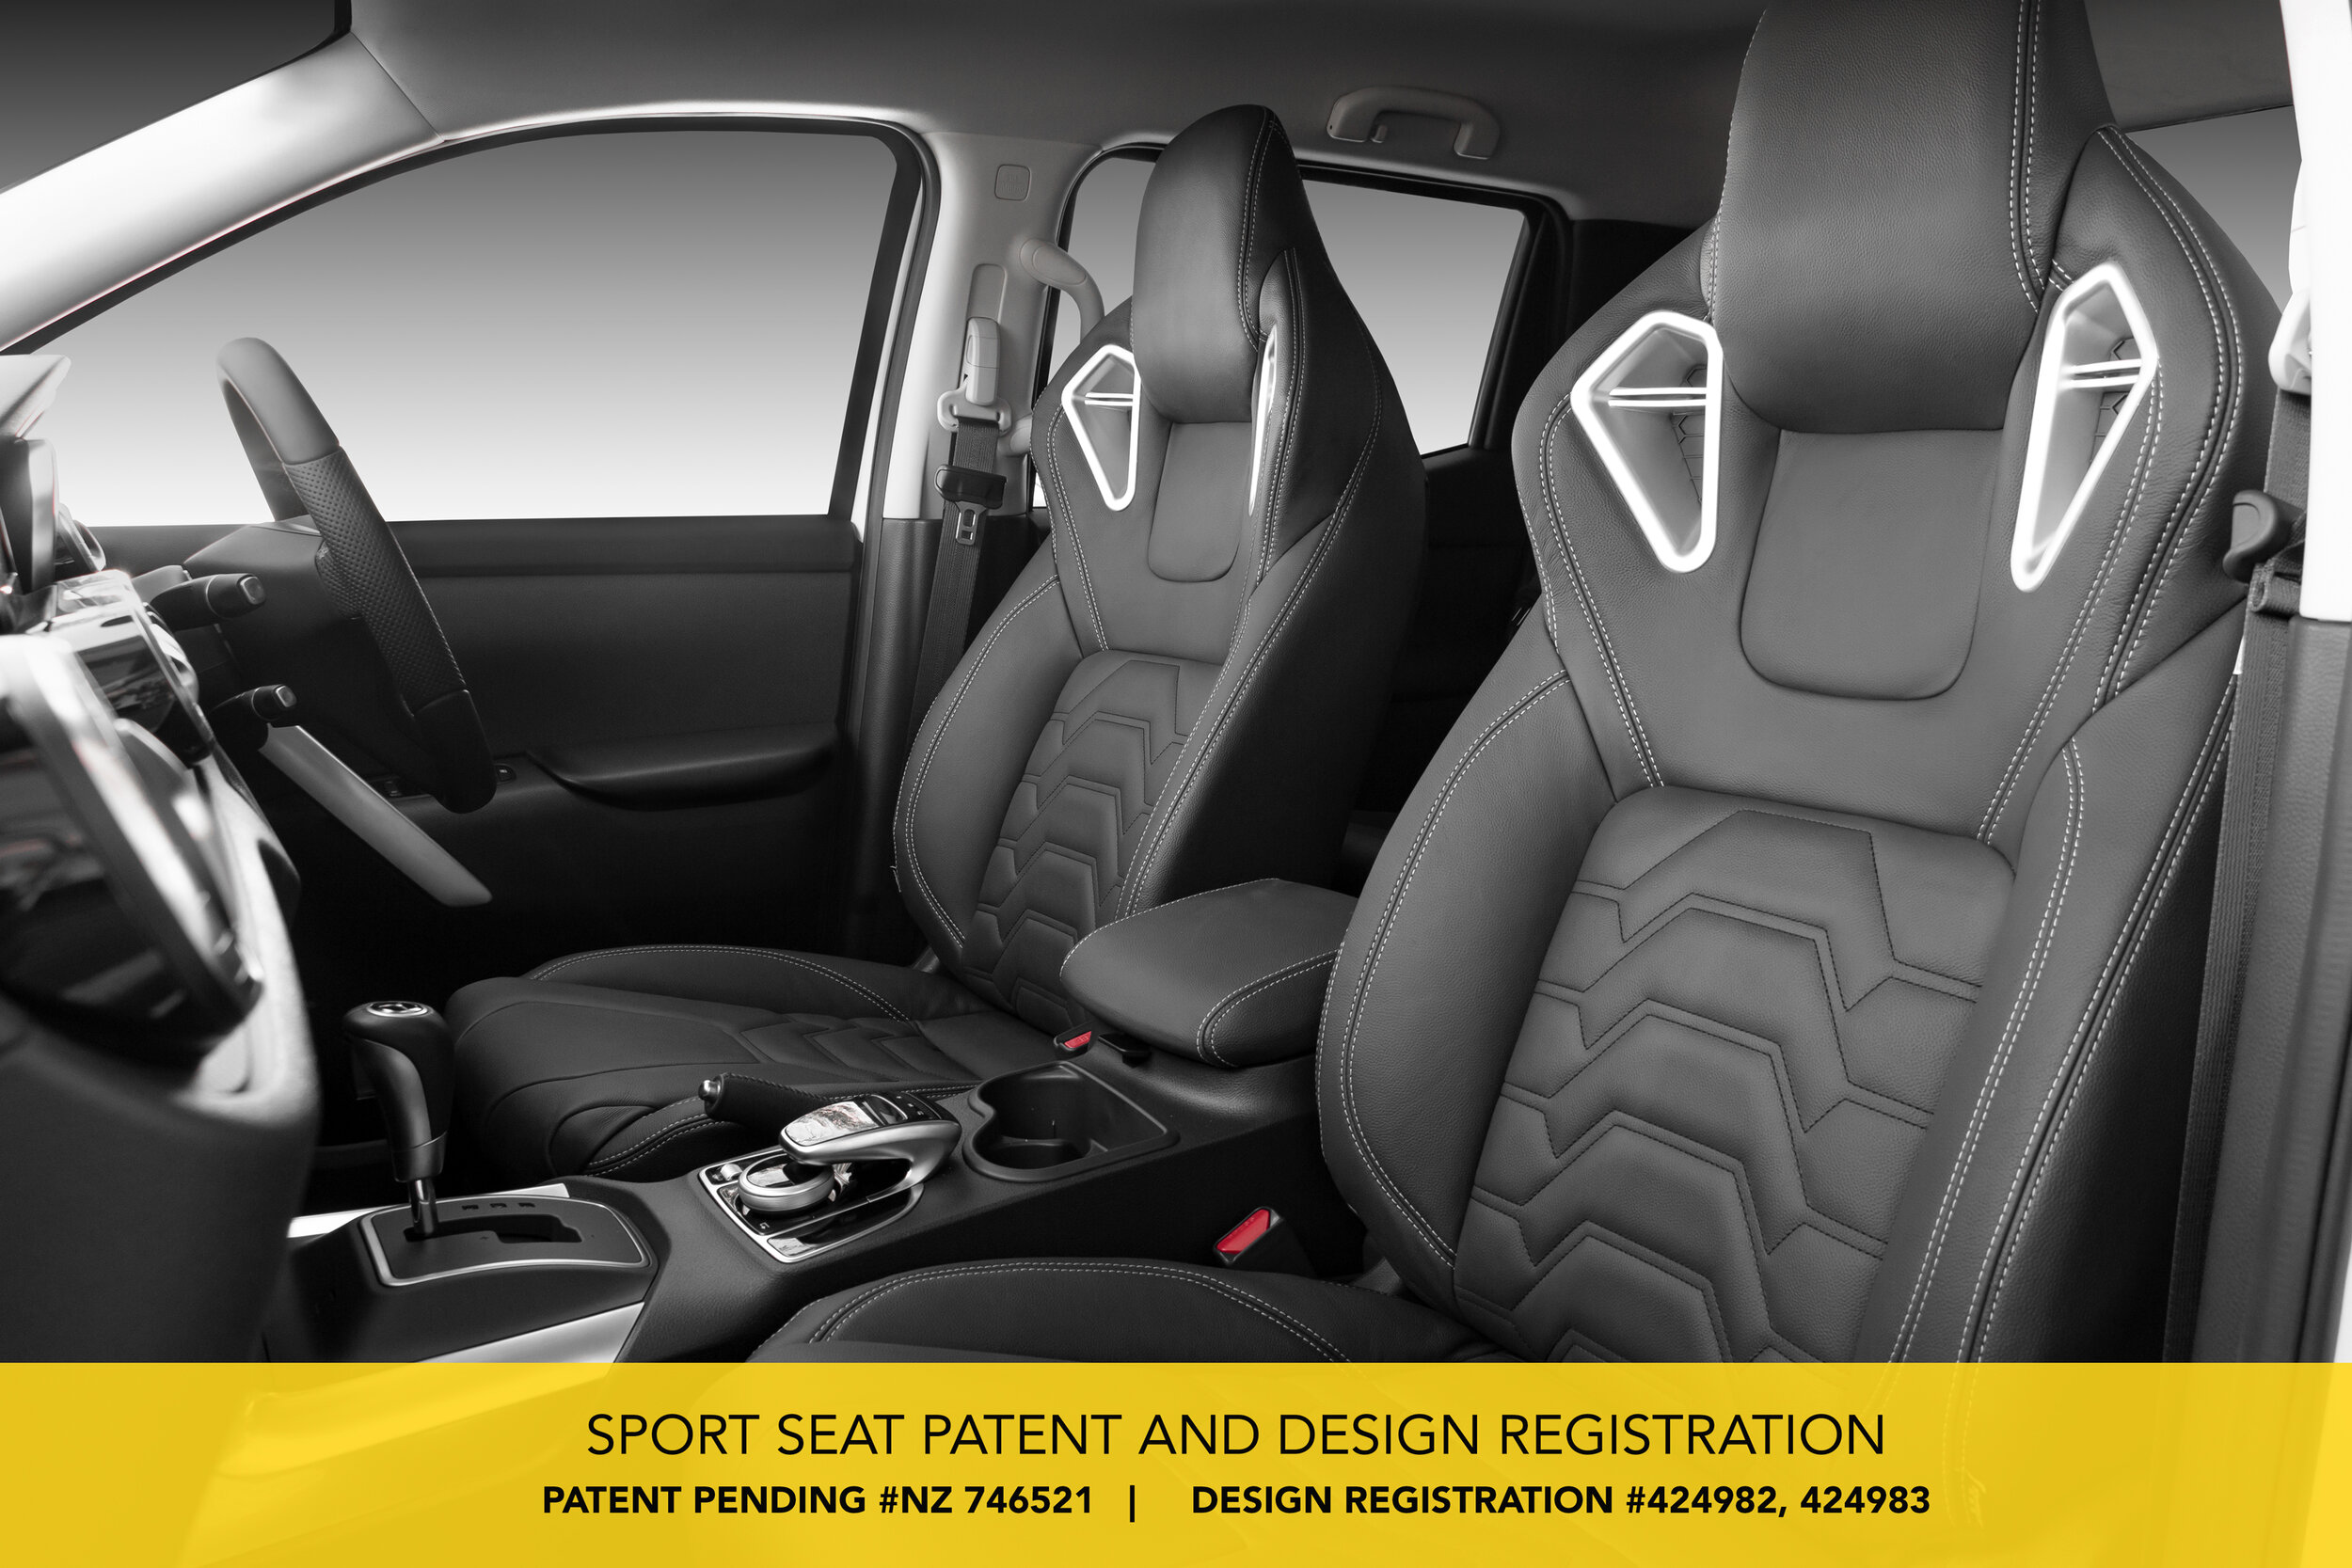 RVE-Mercedes-X-Class-XClass-Monza-Sport-Leather-Seat-Upgrade-Front-Back-3-with-patent.jpg